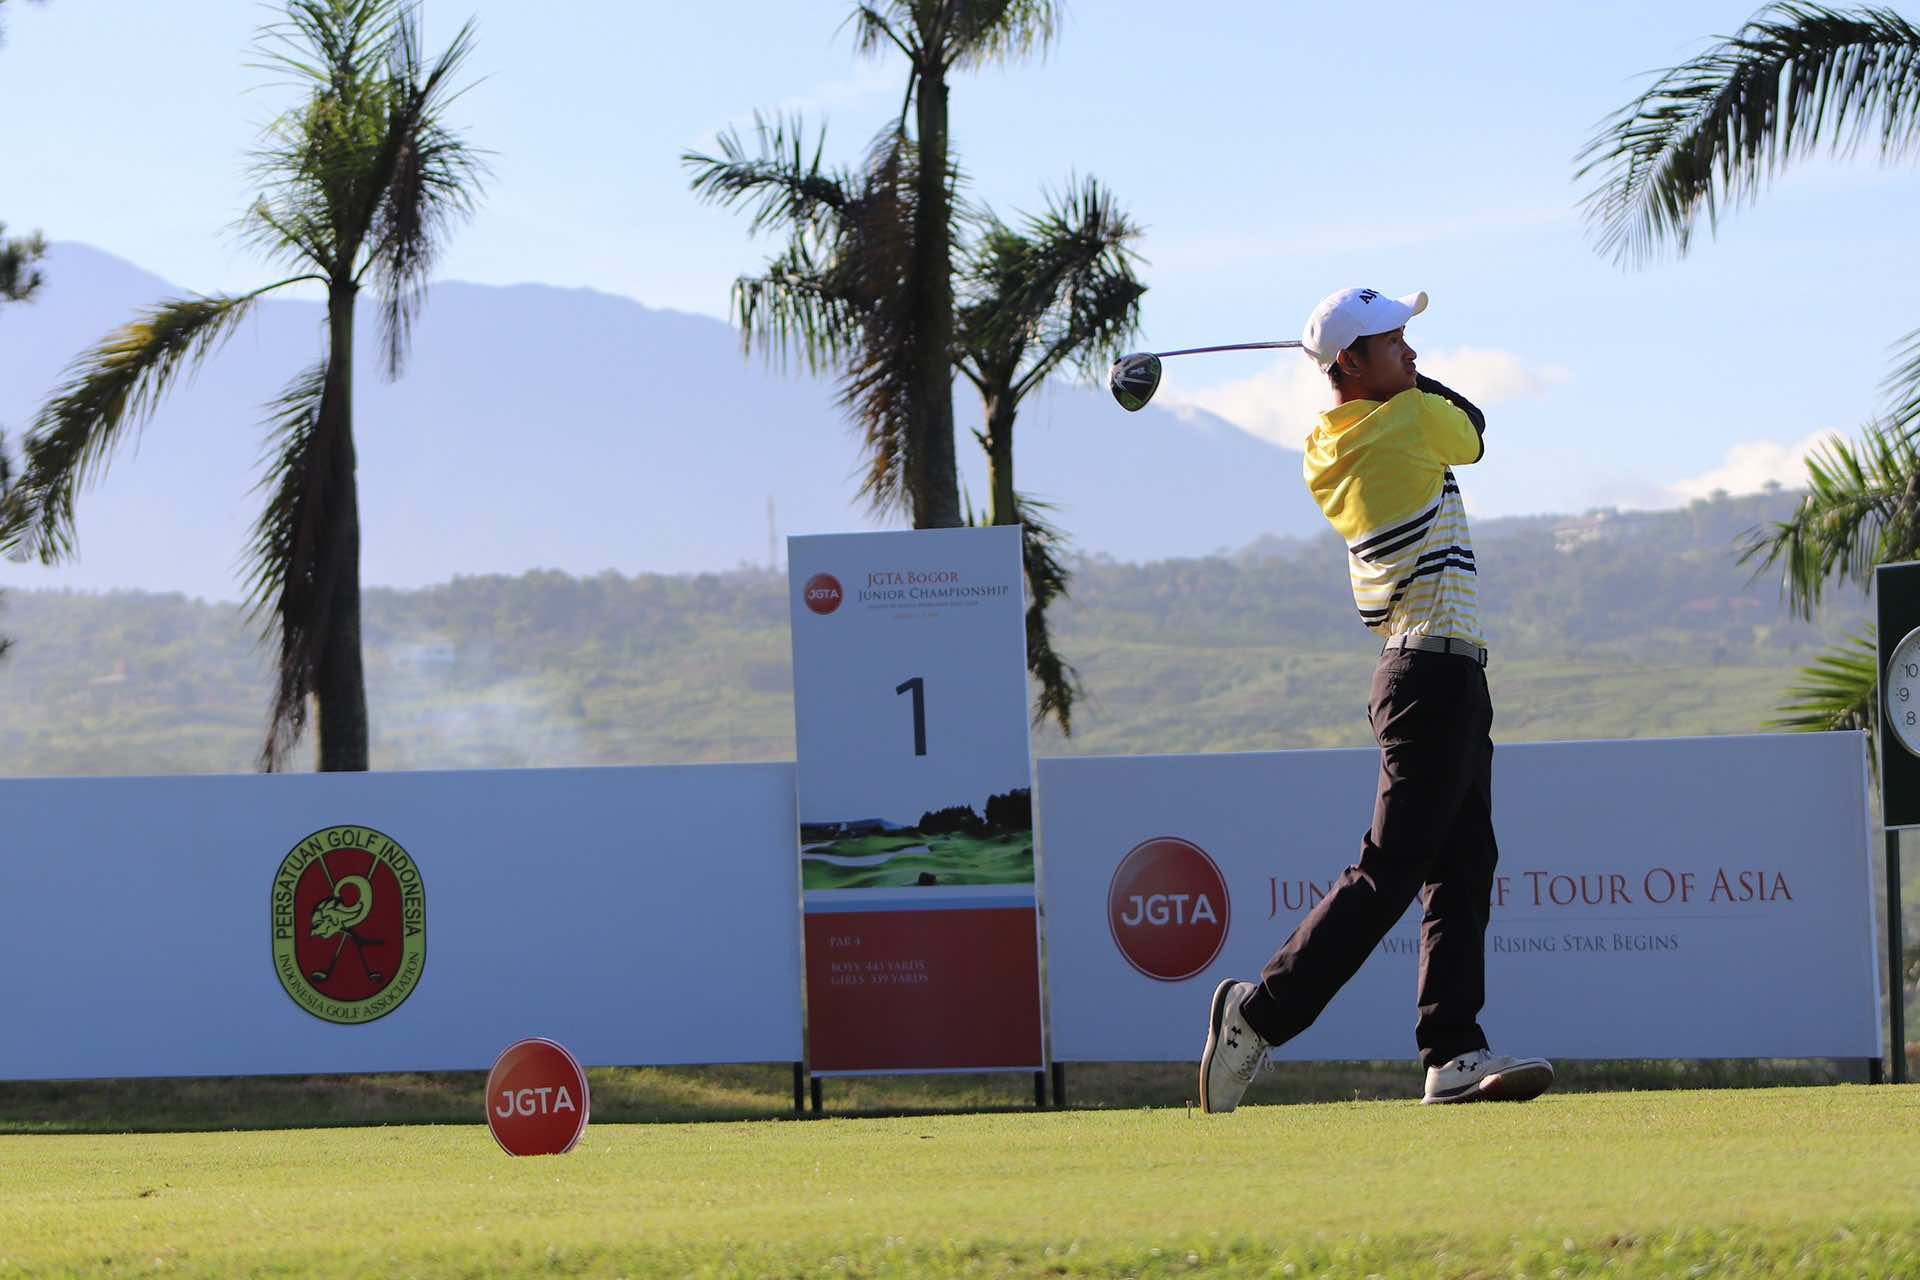 Gabriel Hansel Hari First Team Junior All-Asia first tee swing at the 2019 Bogor Junior Championship